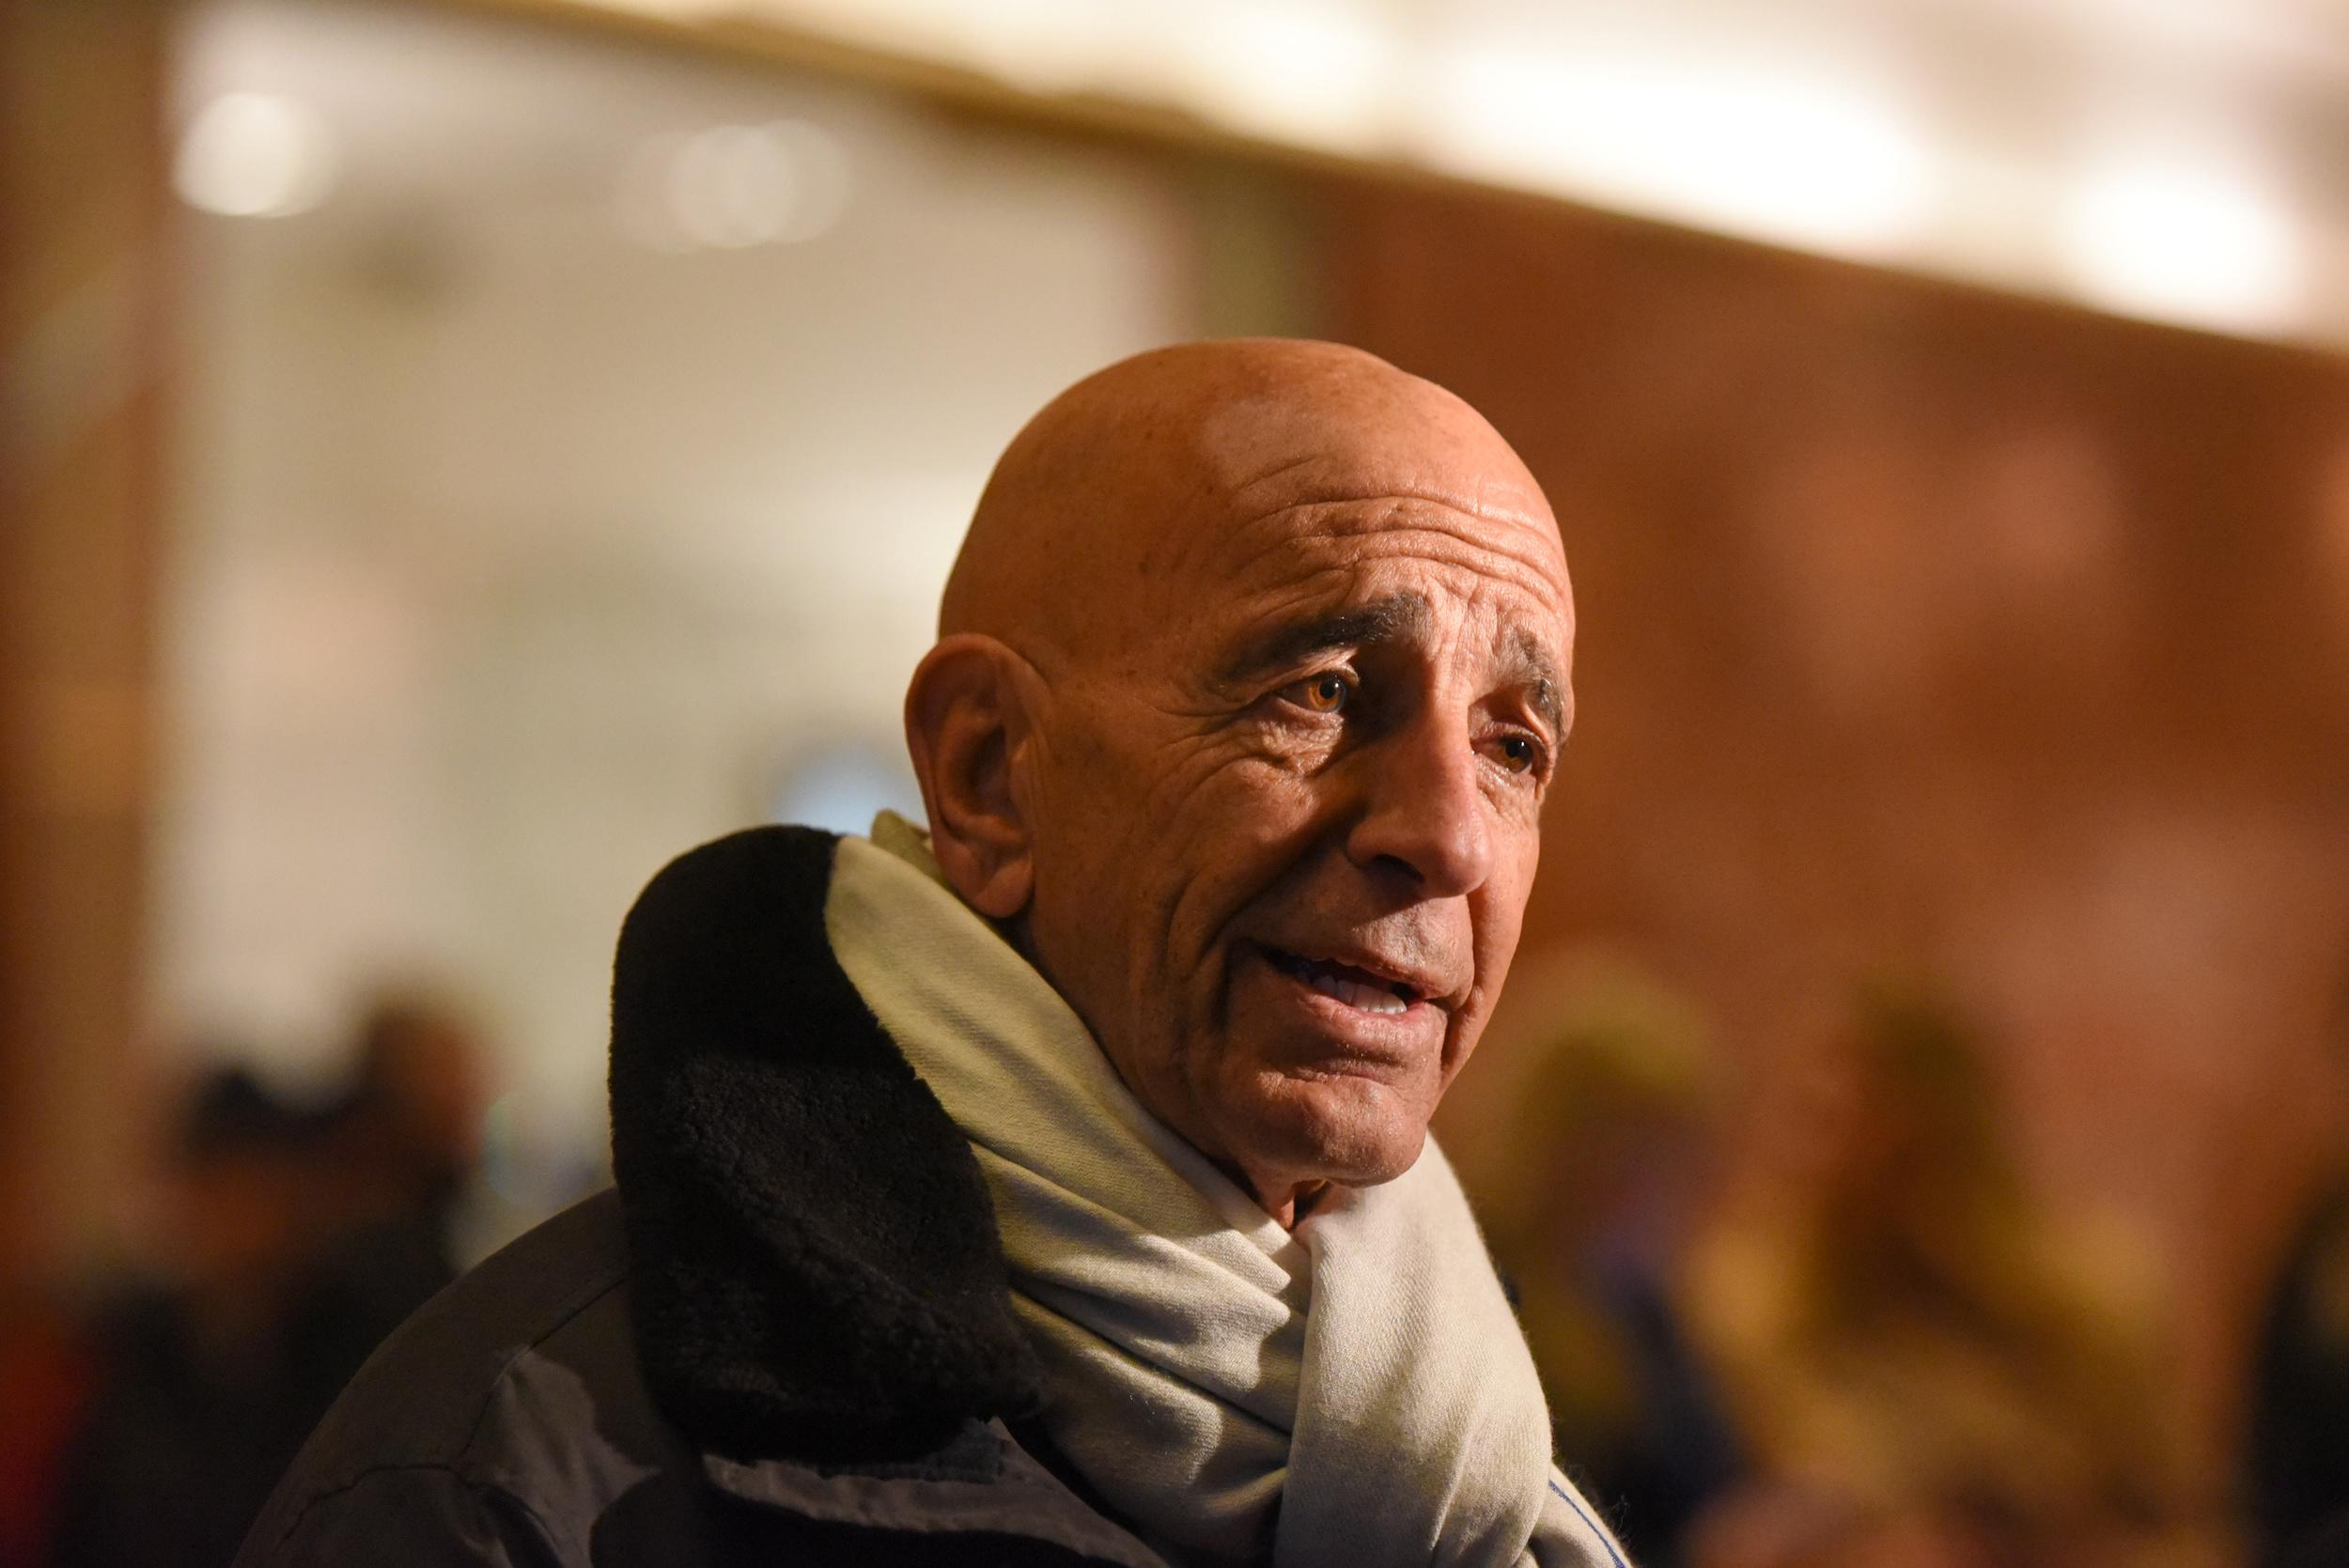 <p><strong>Tom Barrack</strong></p>  <p>The close friend to Donald Trump and CEO of private equity firm Colony Capital recommended that Trump bring in Paul Manafort for his presidential campaign.</p>